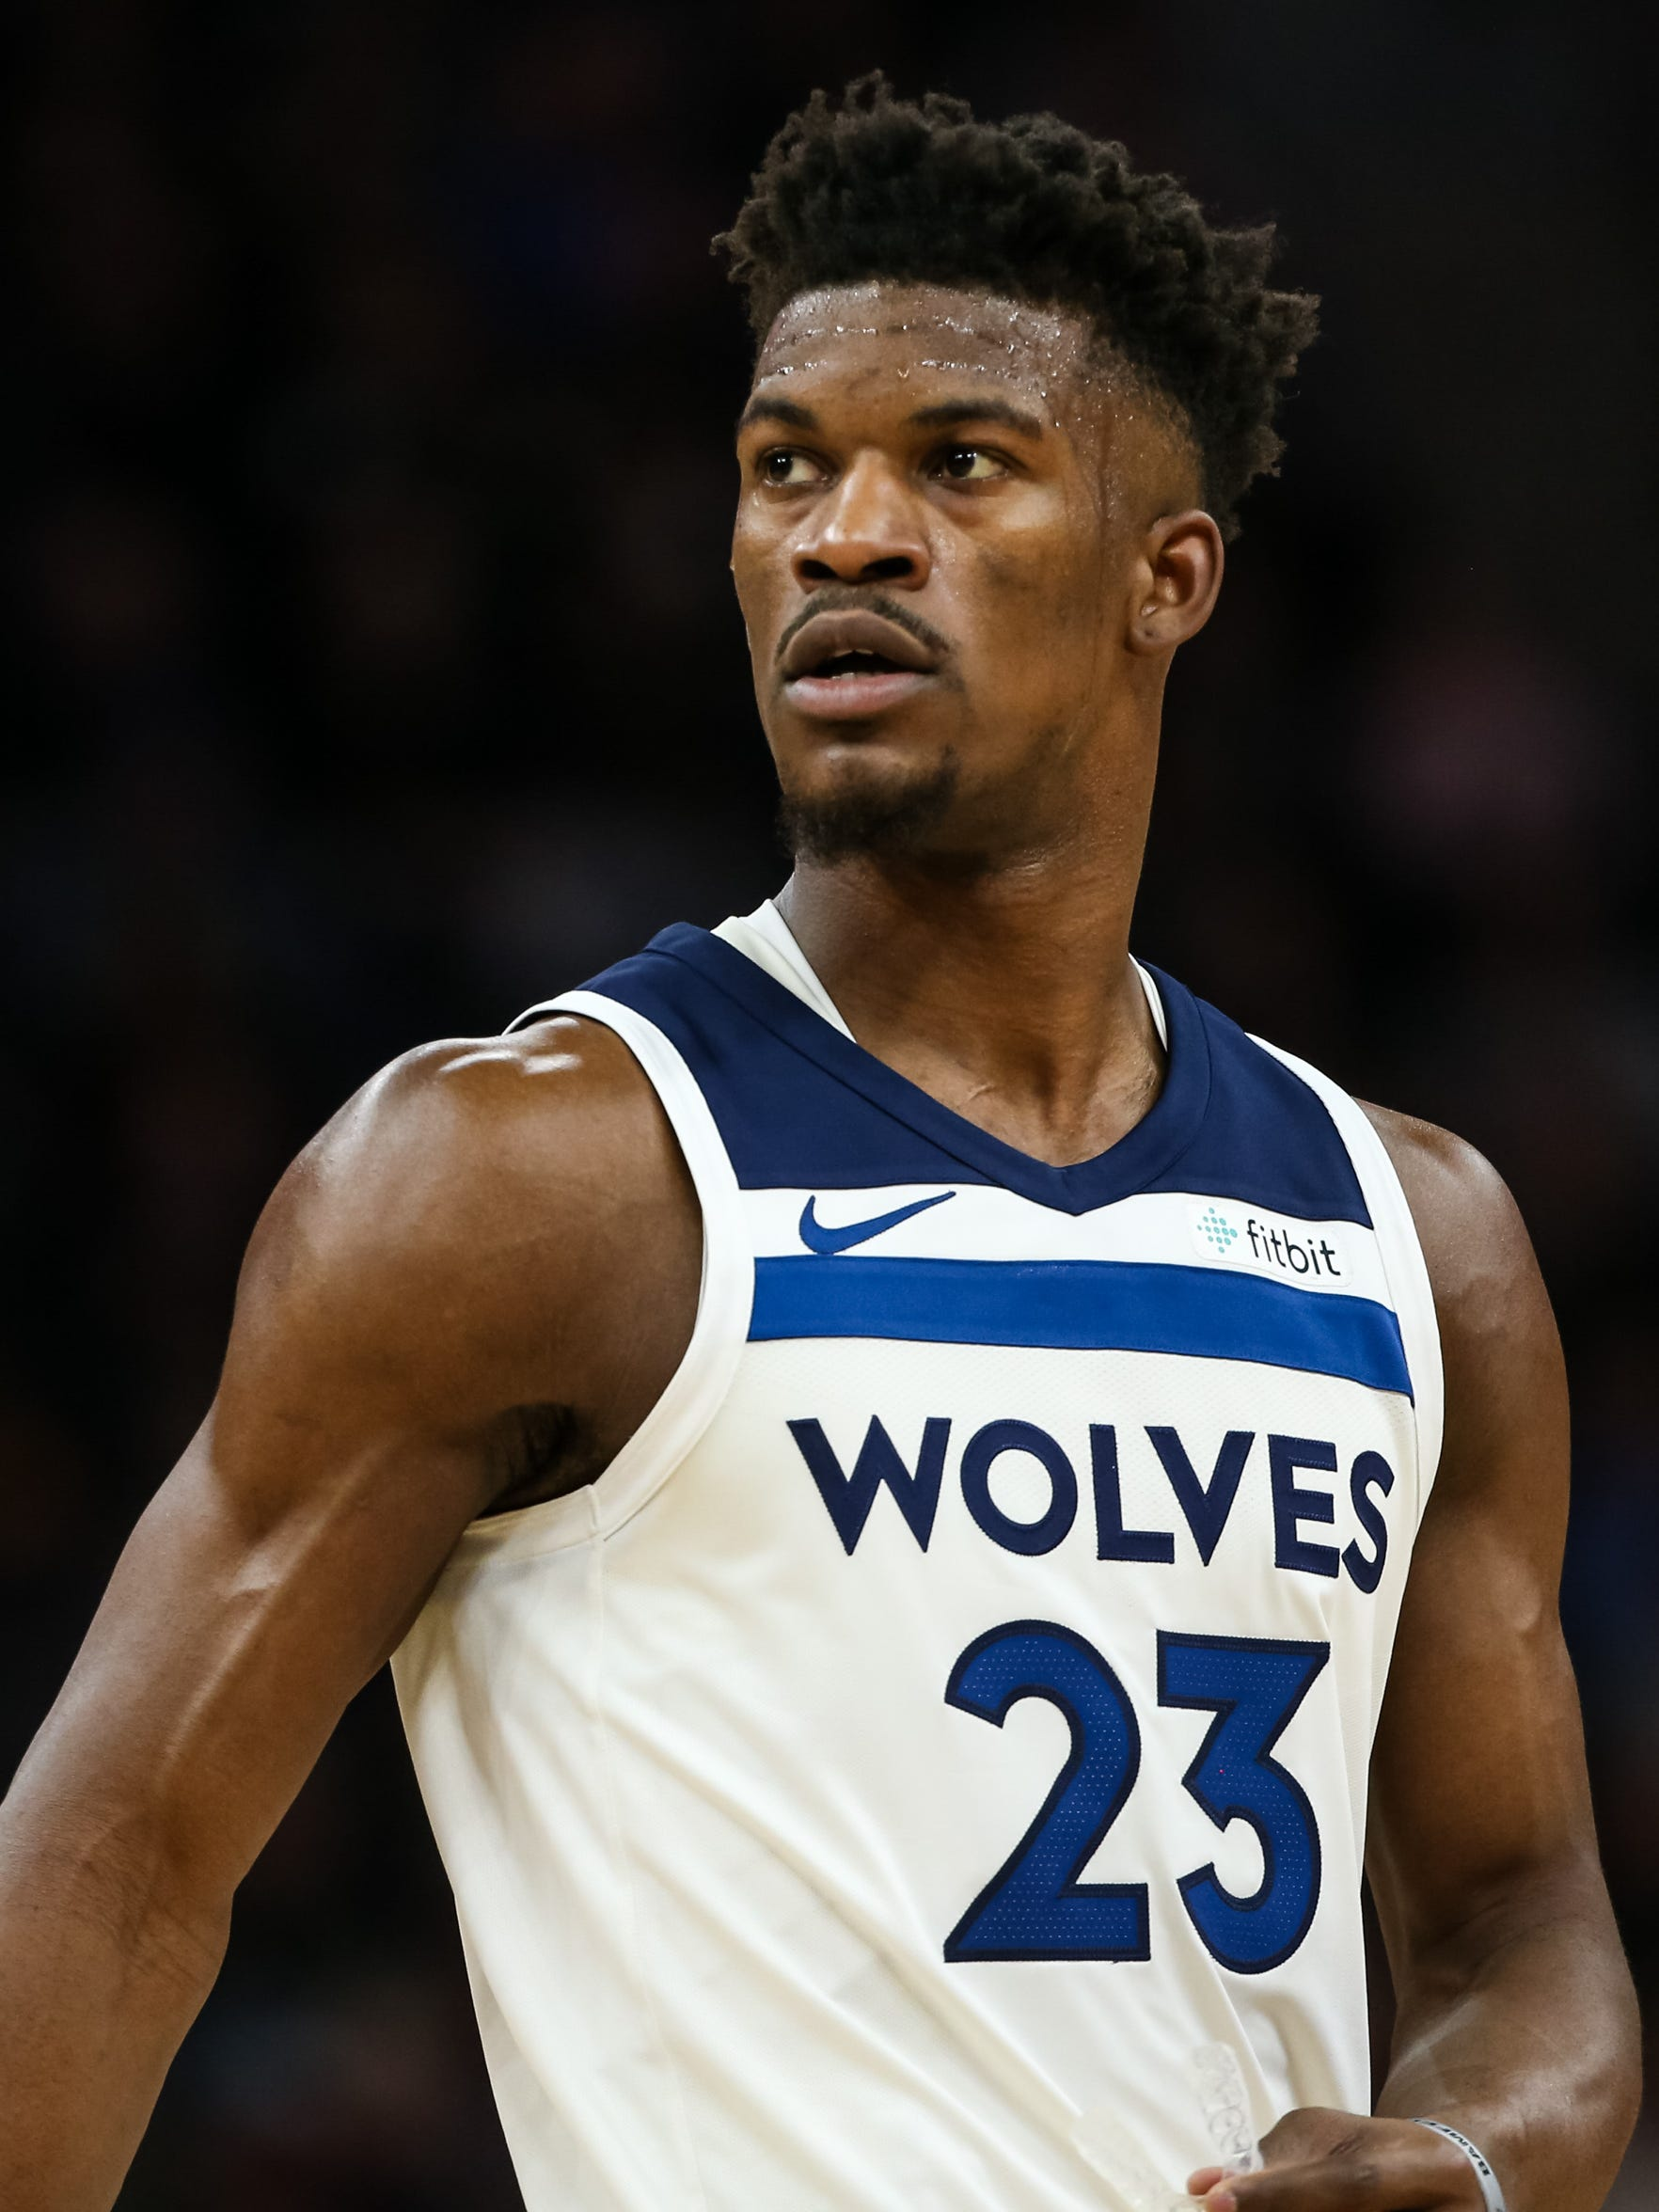 Minnesota Timberwolves guard Jimmy Butler during a game between the Minnesota Timberwolves and Los Angeles Lakers at Target Center.